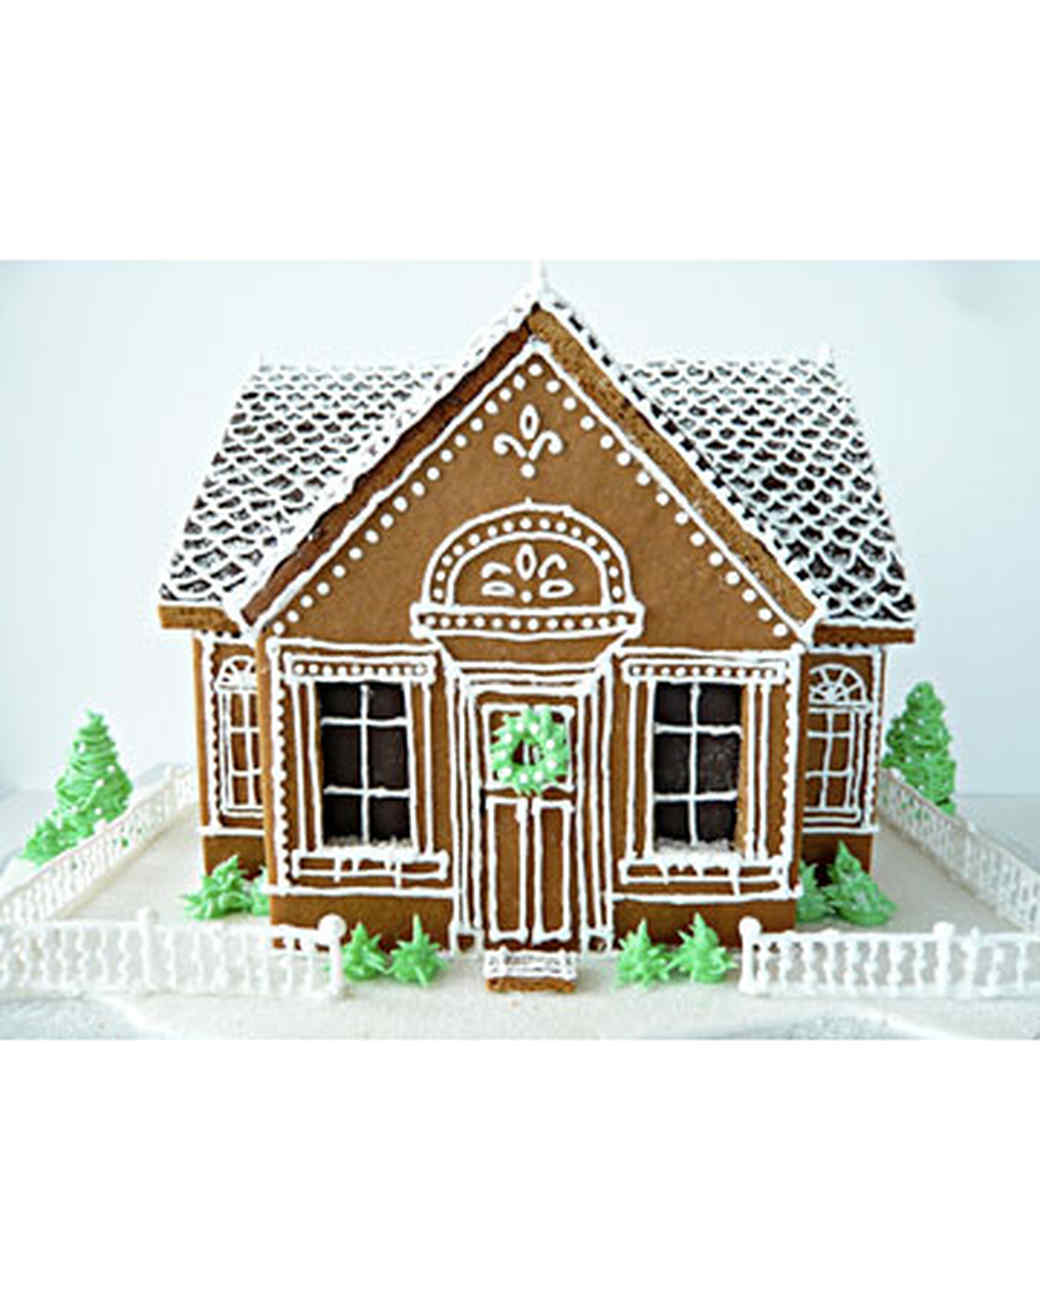 victorian gingerbread house plans house plans for empty nesters gingerbread style home plans small victorian house plans download ugc gingerbread 2010 6689596 11423767 xl gingerbread